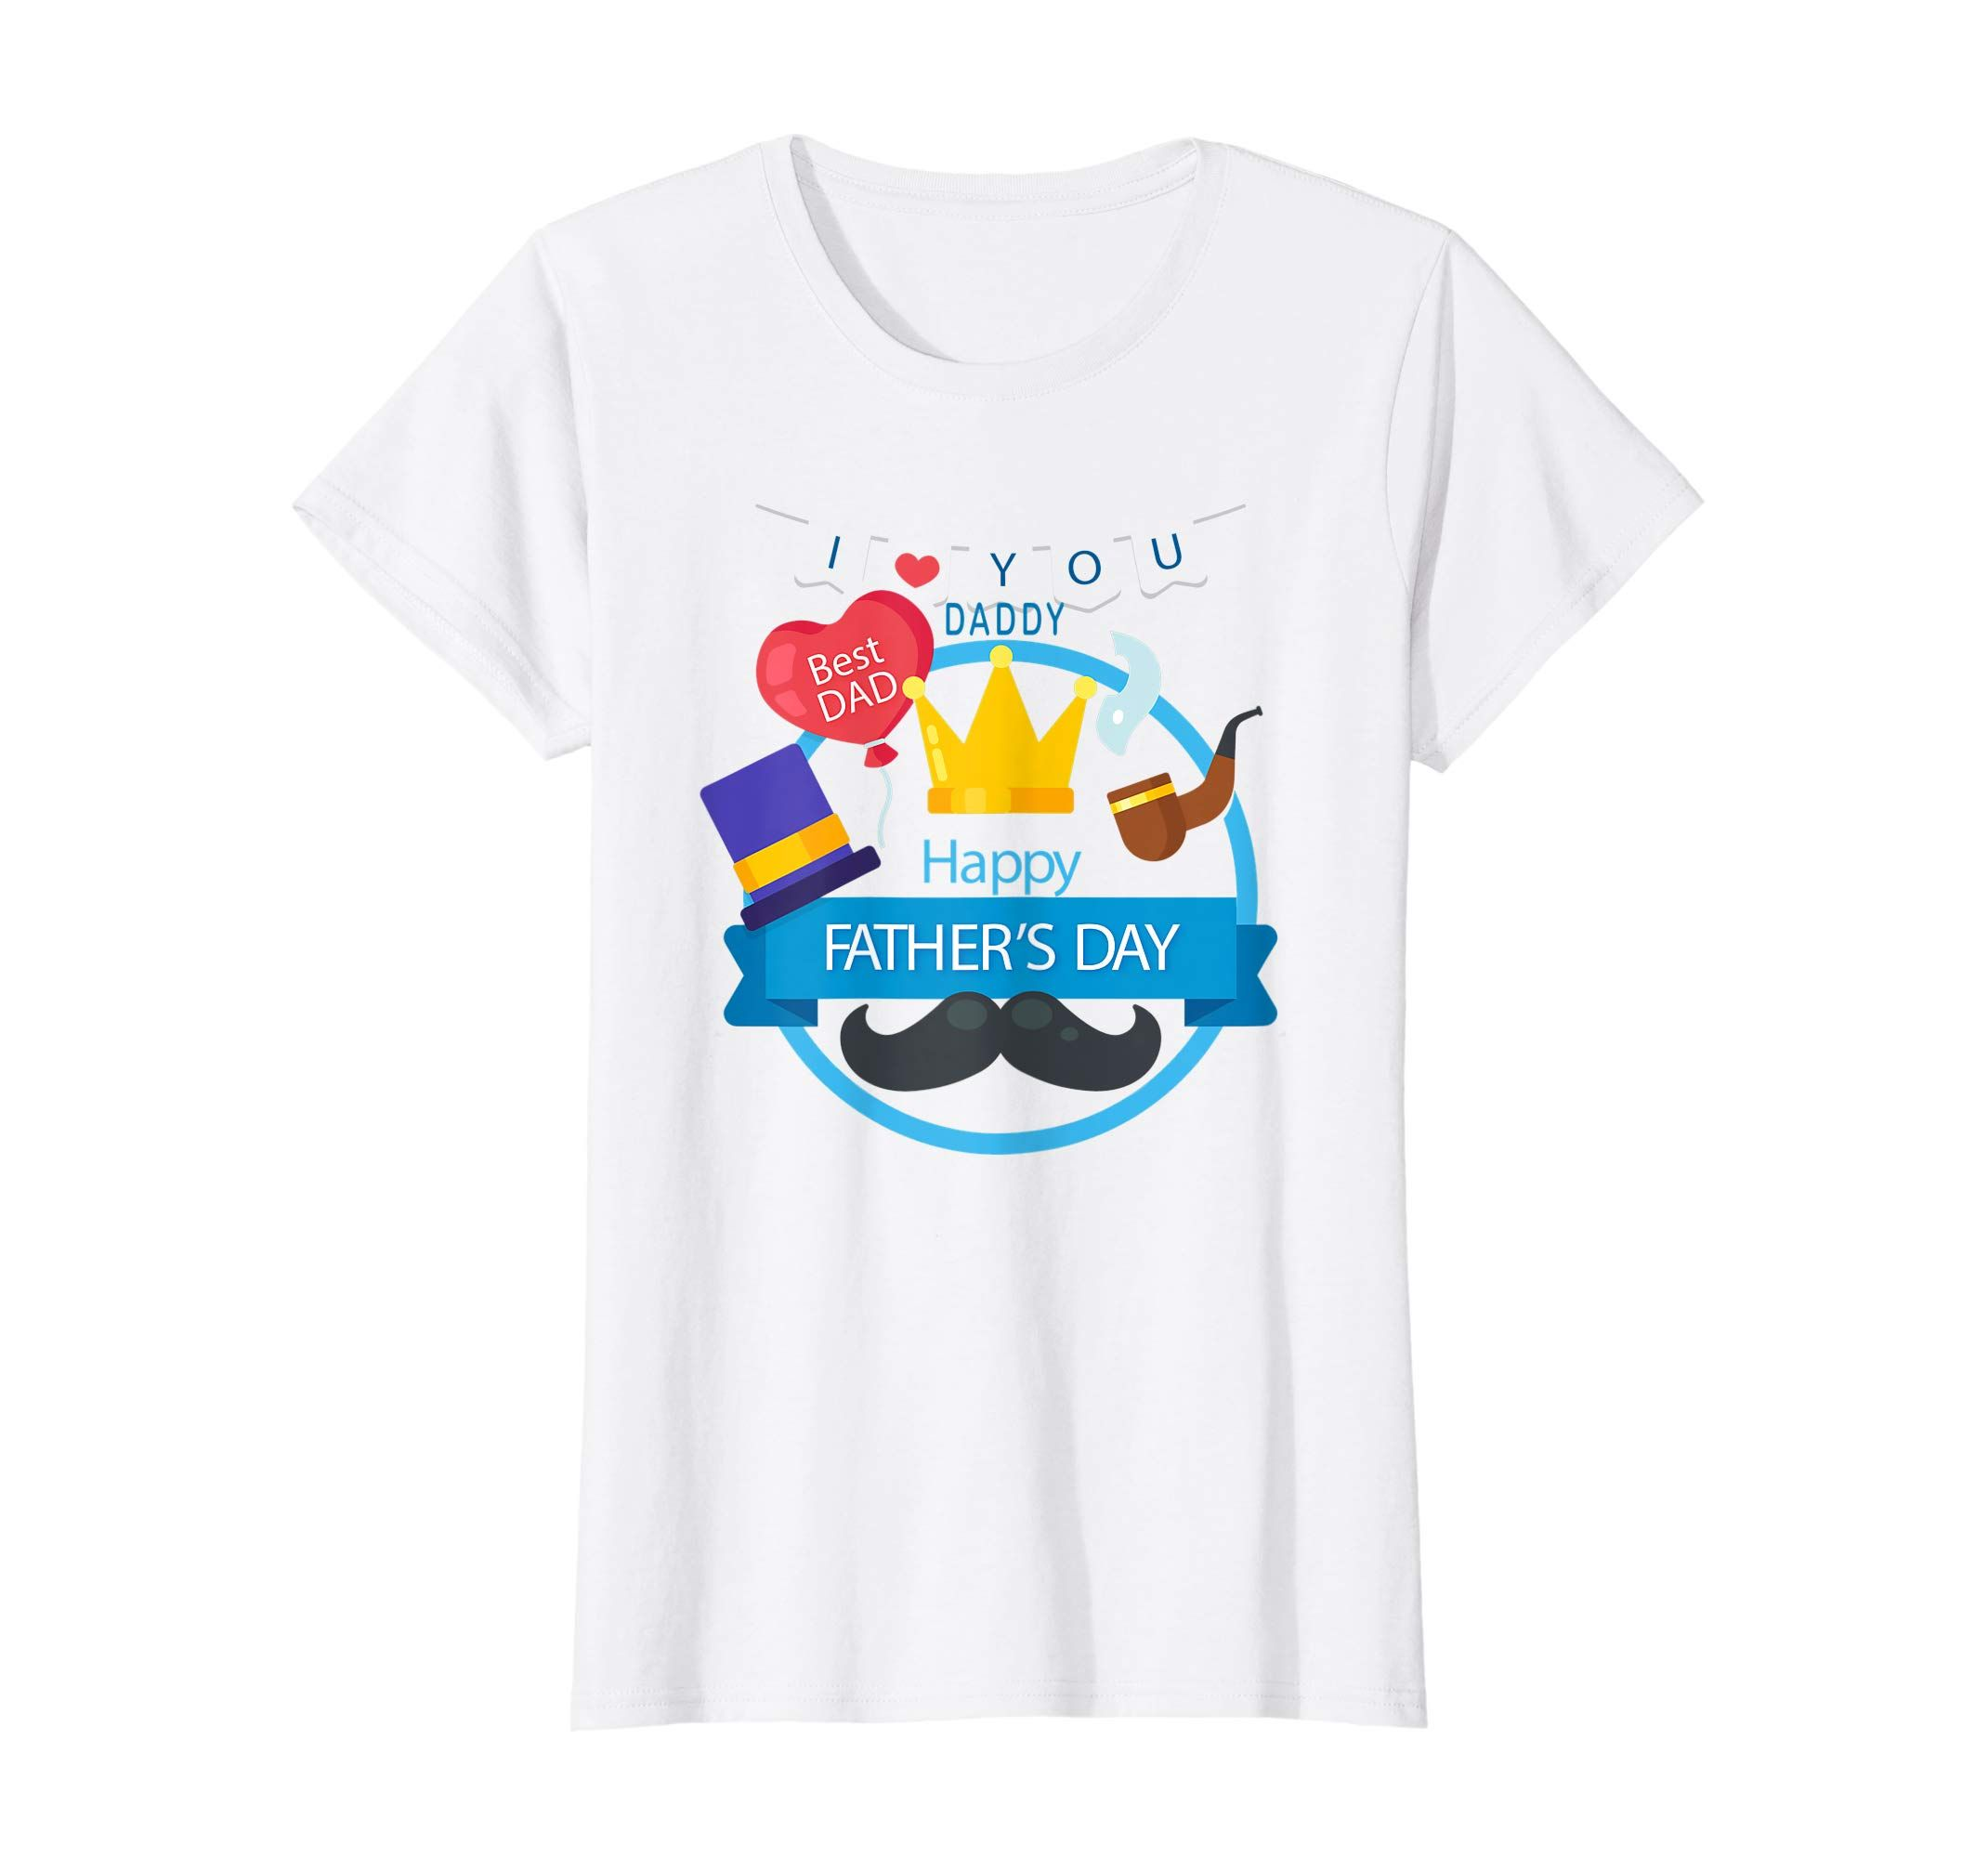 8008936c Amazon.com: I love you daddy T Shirt, Happy Fathers Day Gift Shirt ...